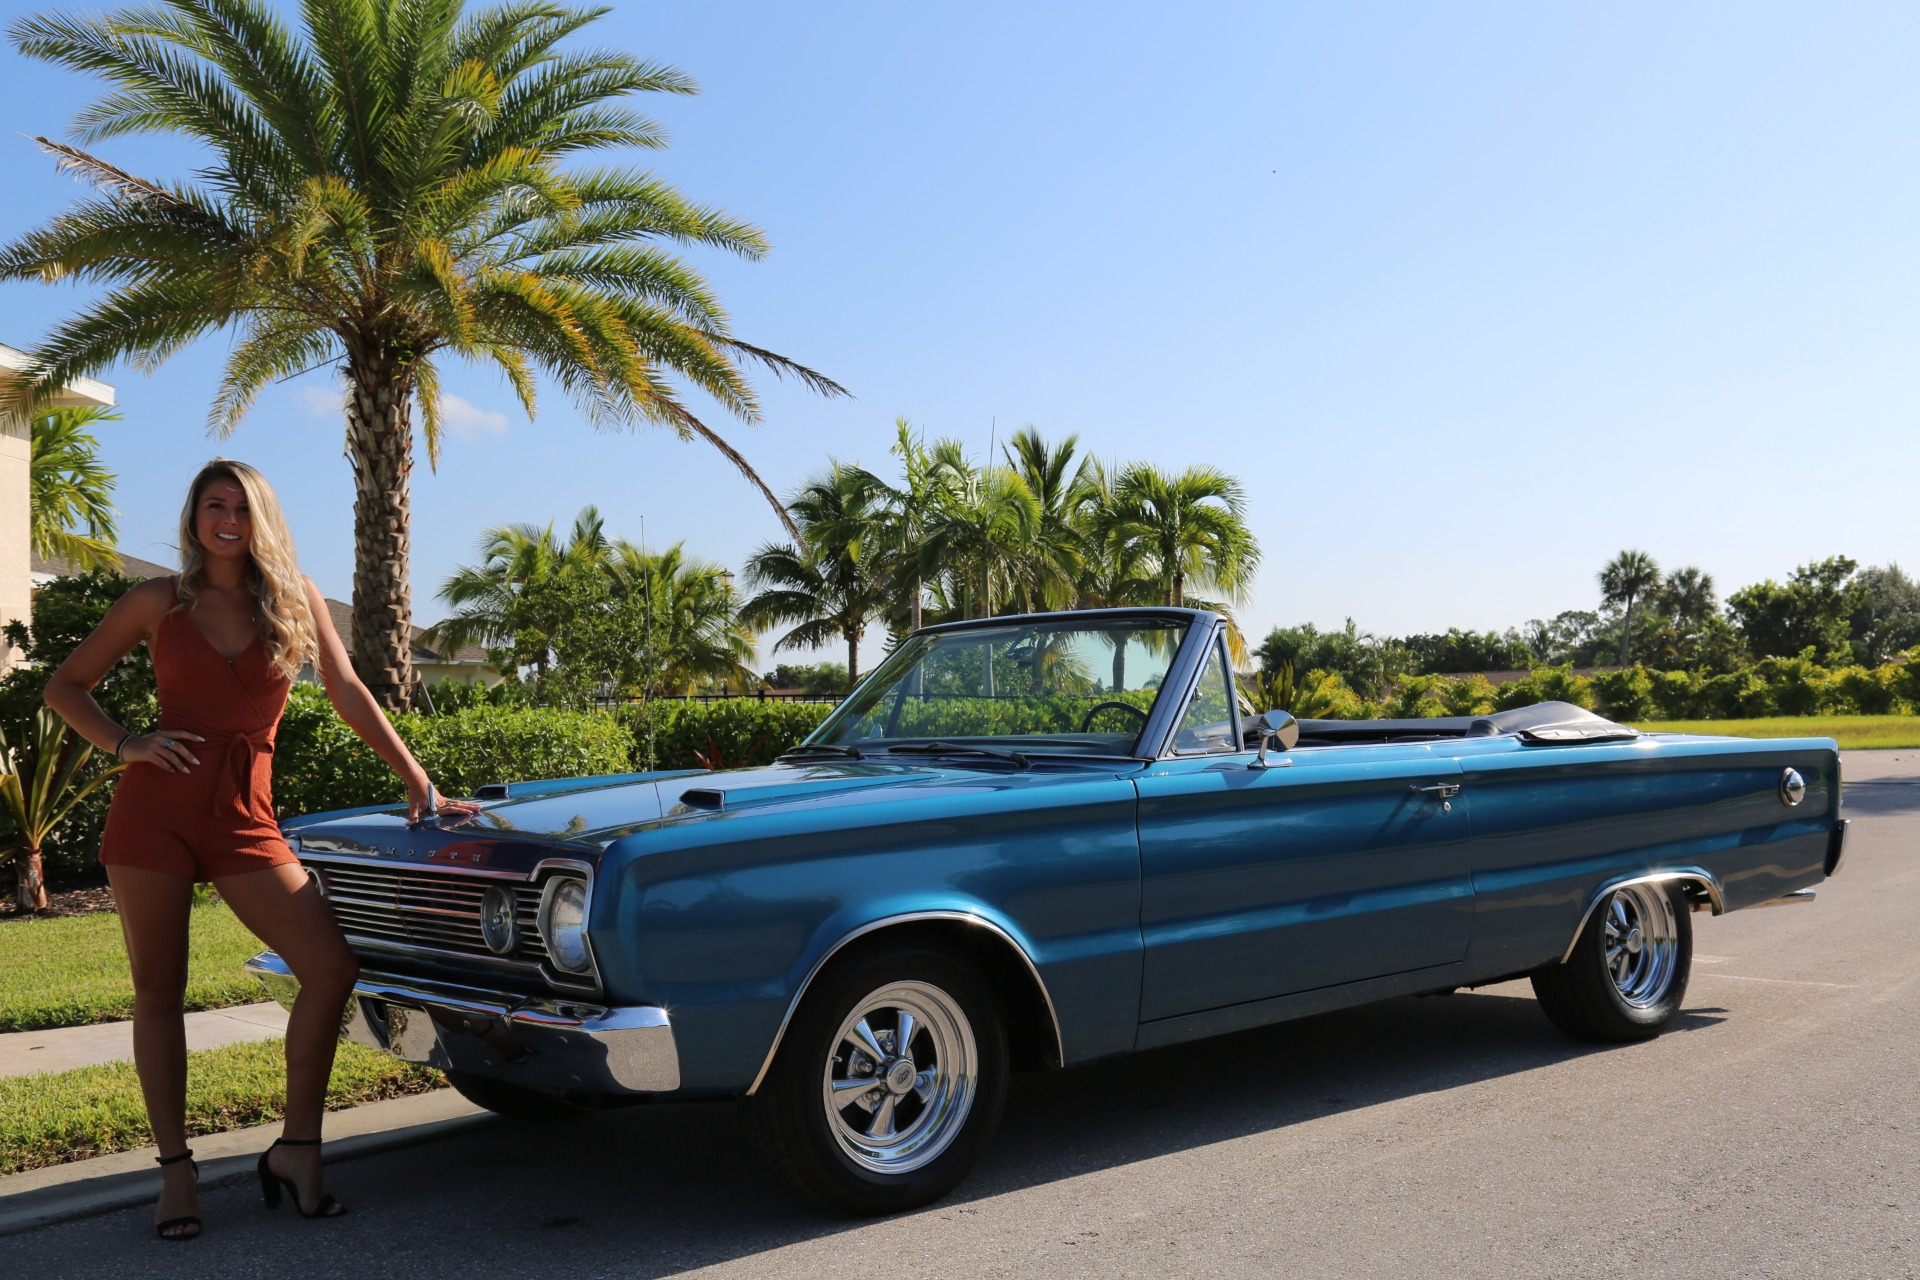 Used 1966 Plymouth Belvedere 383 V8 for sale Sold at Muscle Cars for Sale Inc. in Fort Myers FL 33912 1